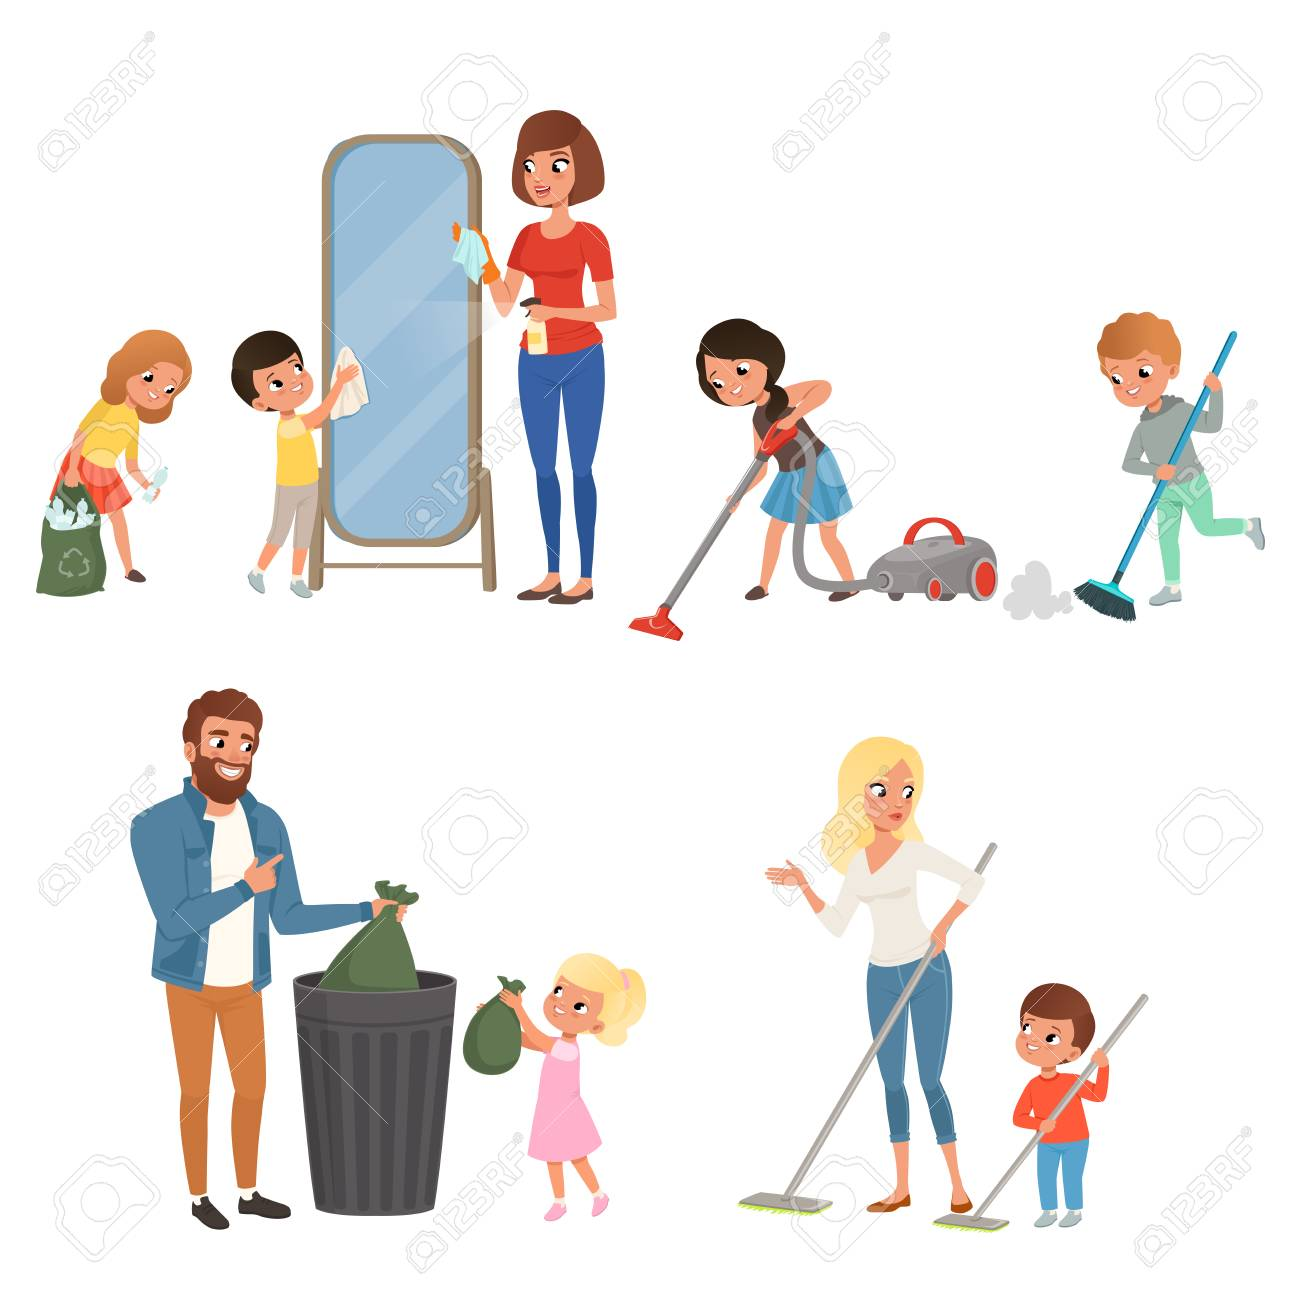 Children helping their parents with housework. Sweeping, vacuuming, washing floor, throwing out garbage, cleaning mirror. Cartoon kids characters. Flat vector design - 93531266